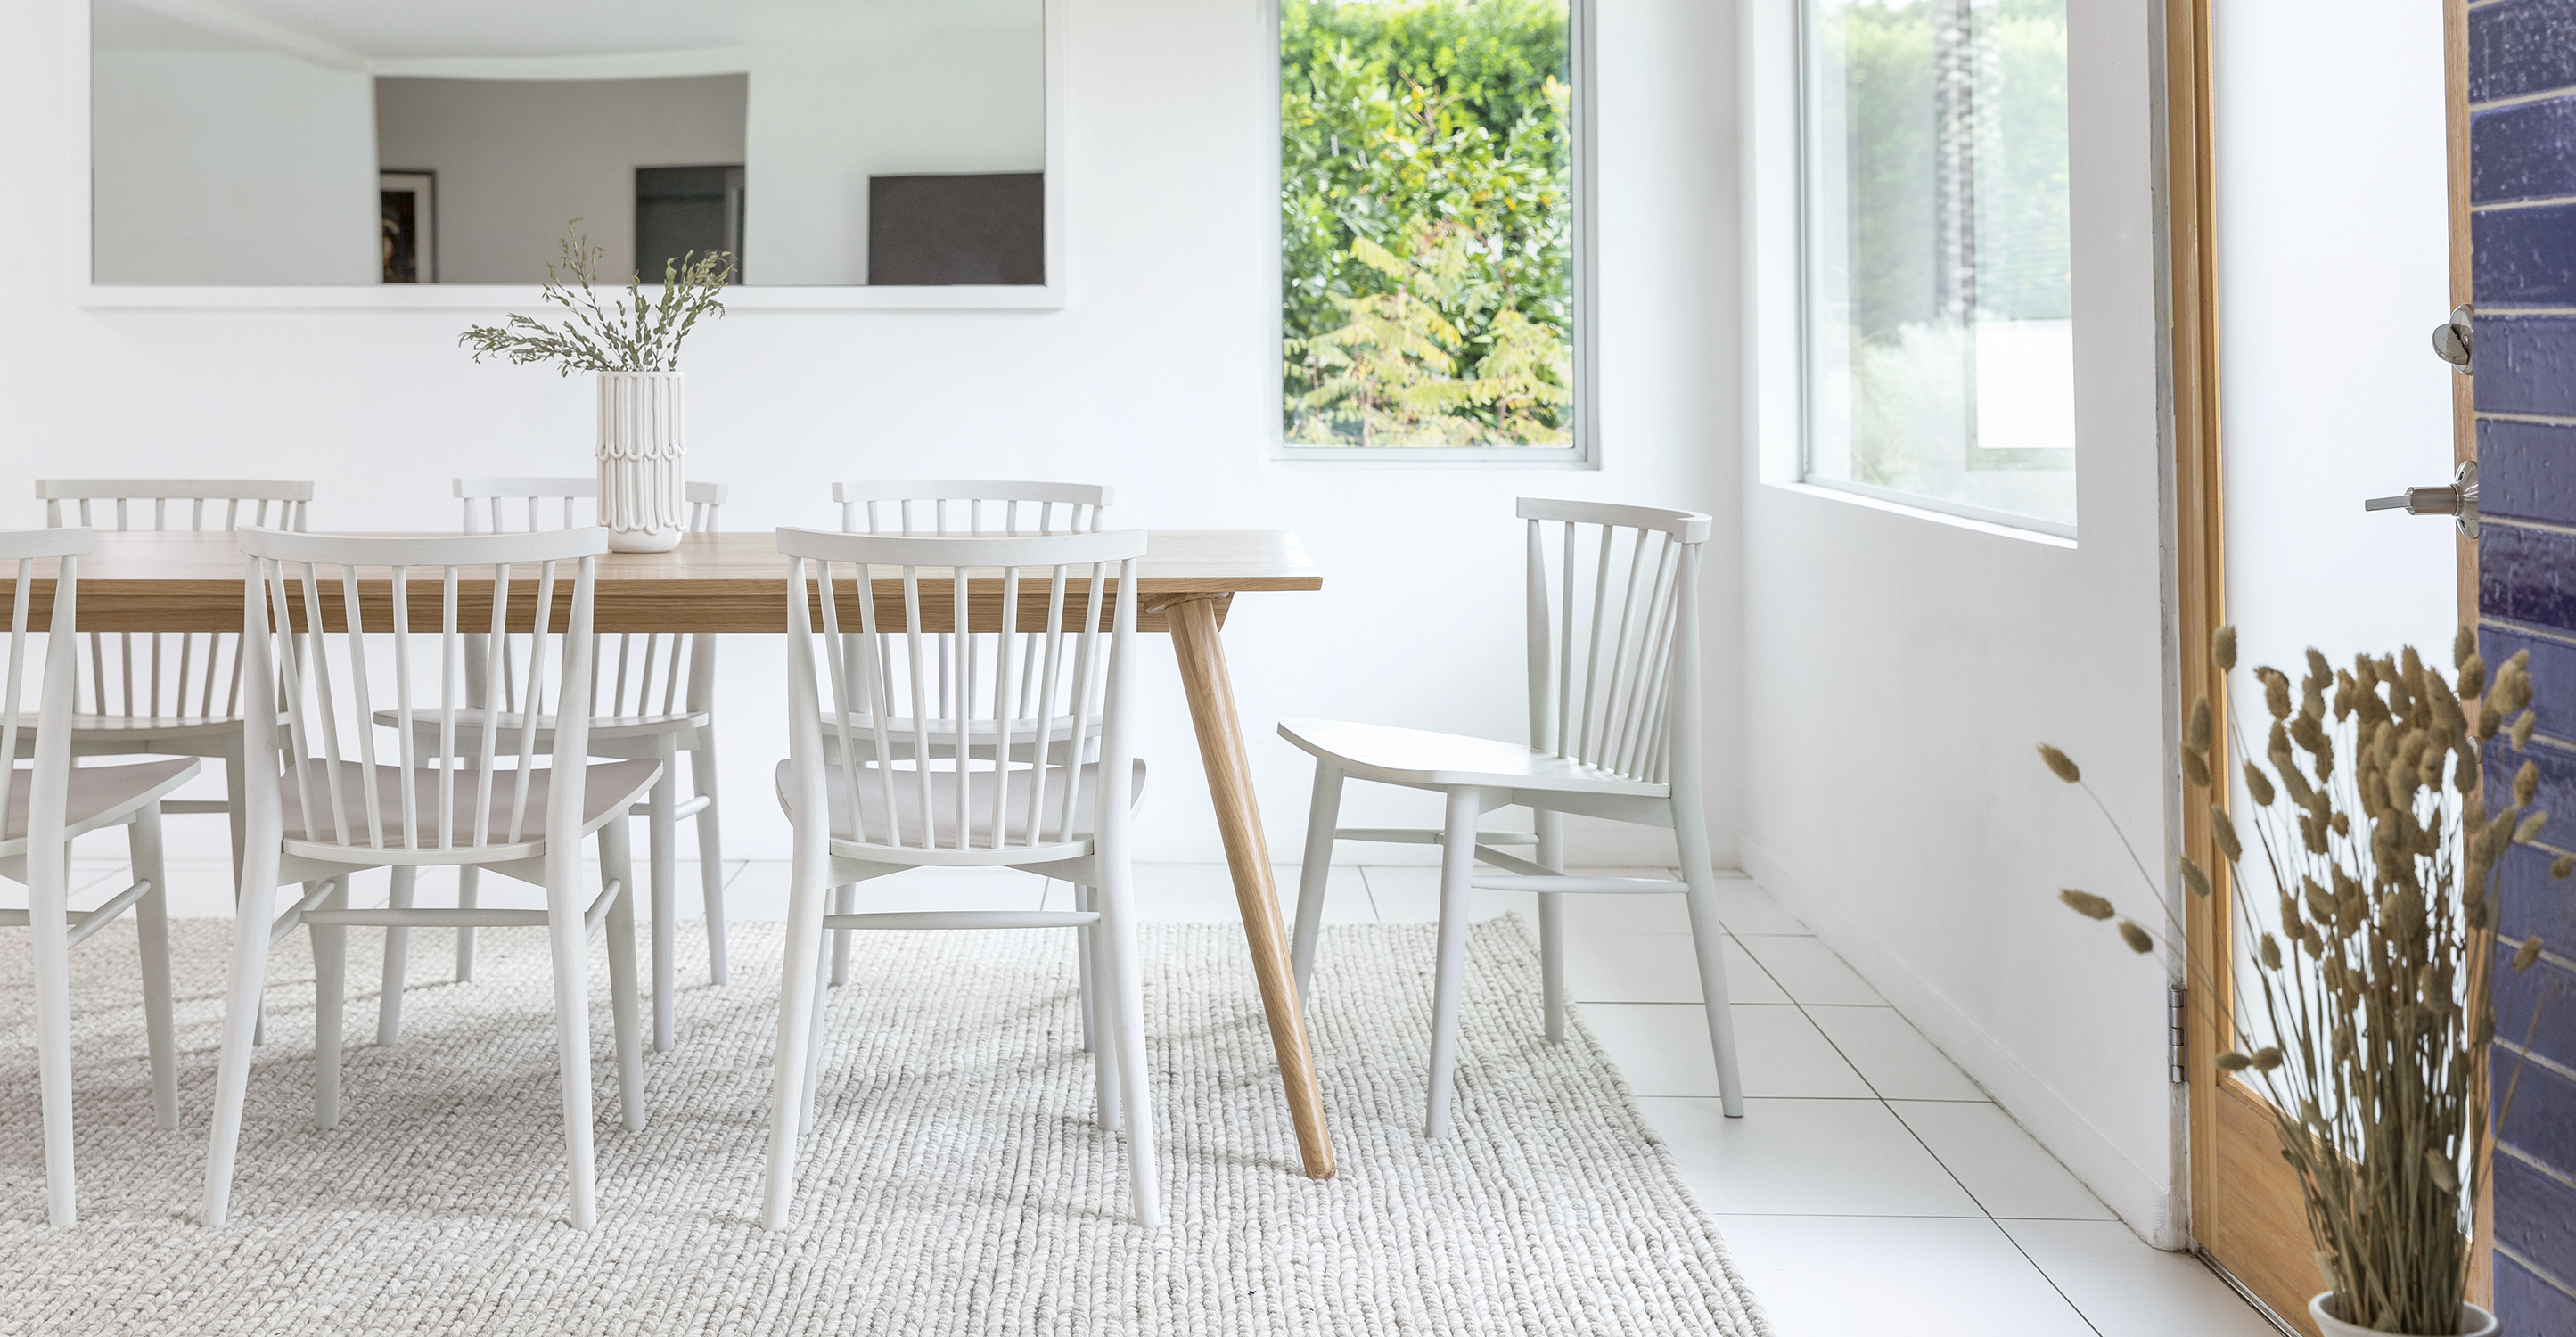 The perfect spread of dining room inspiration, for whatever future you're serving.